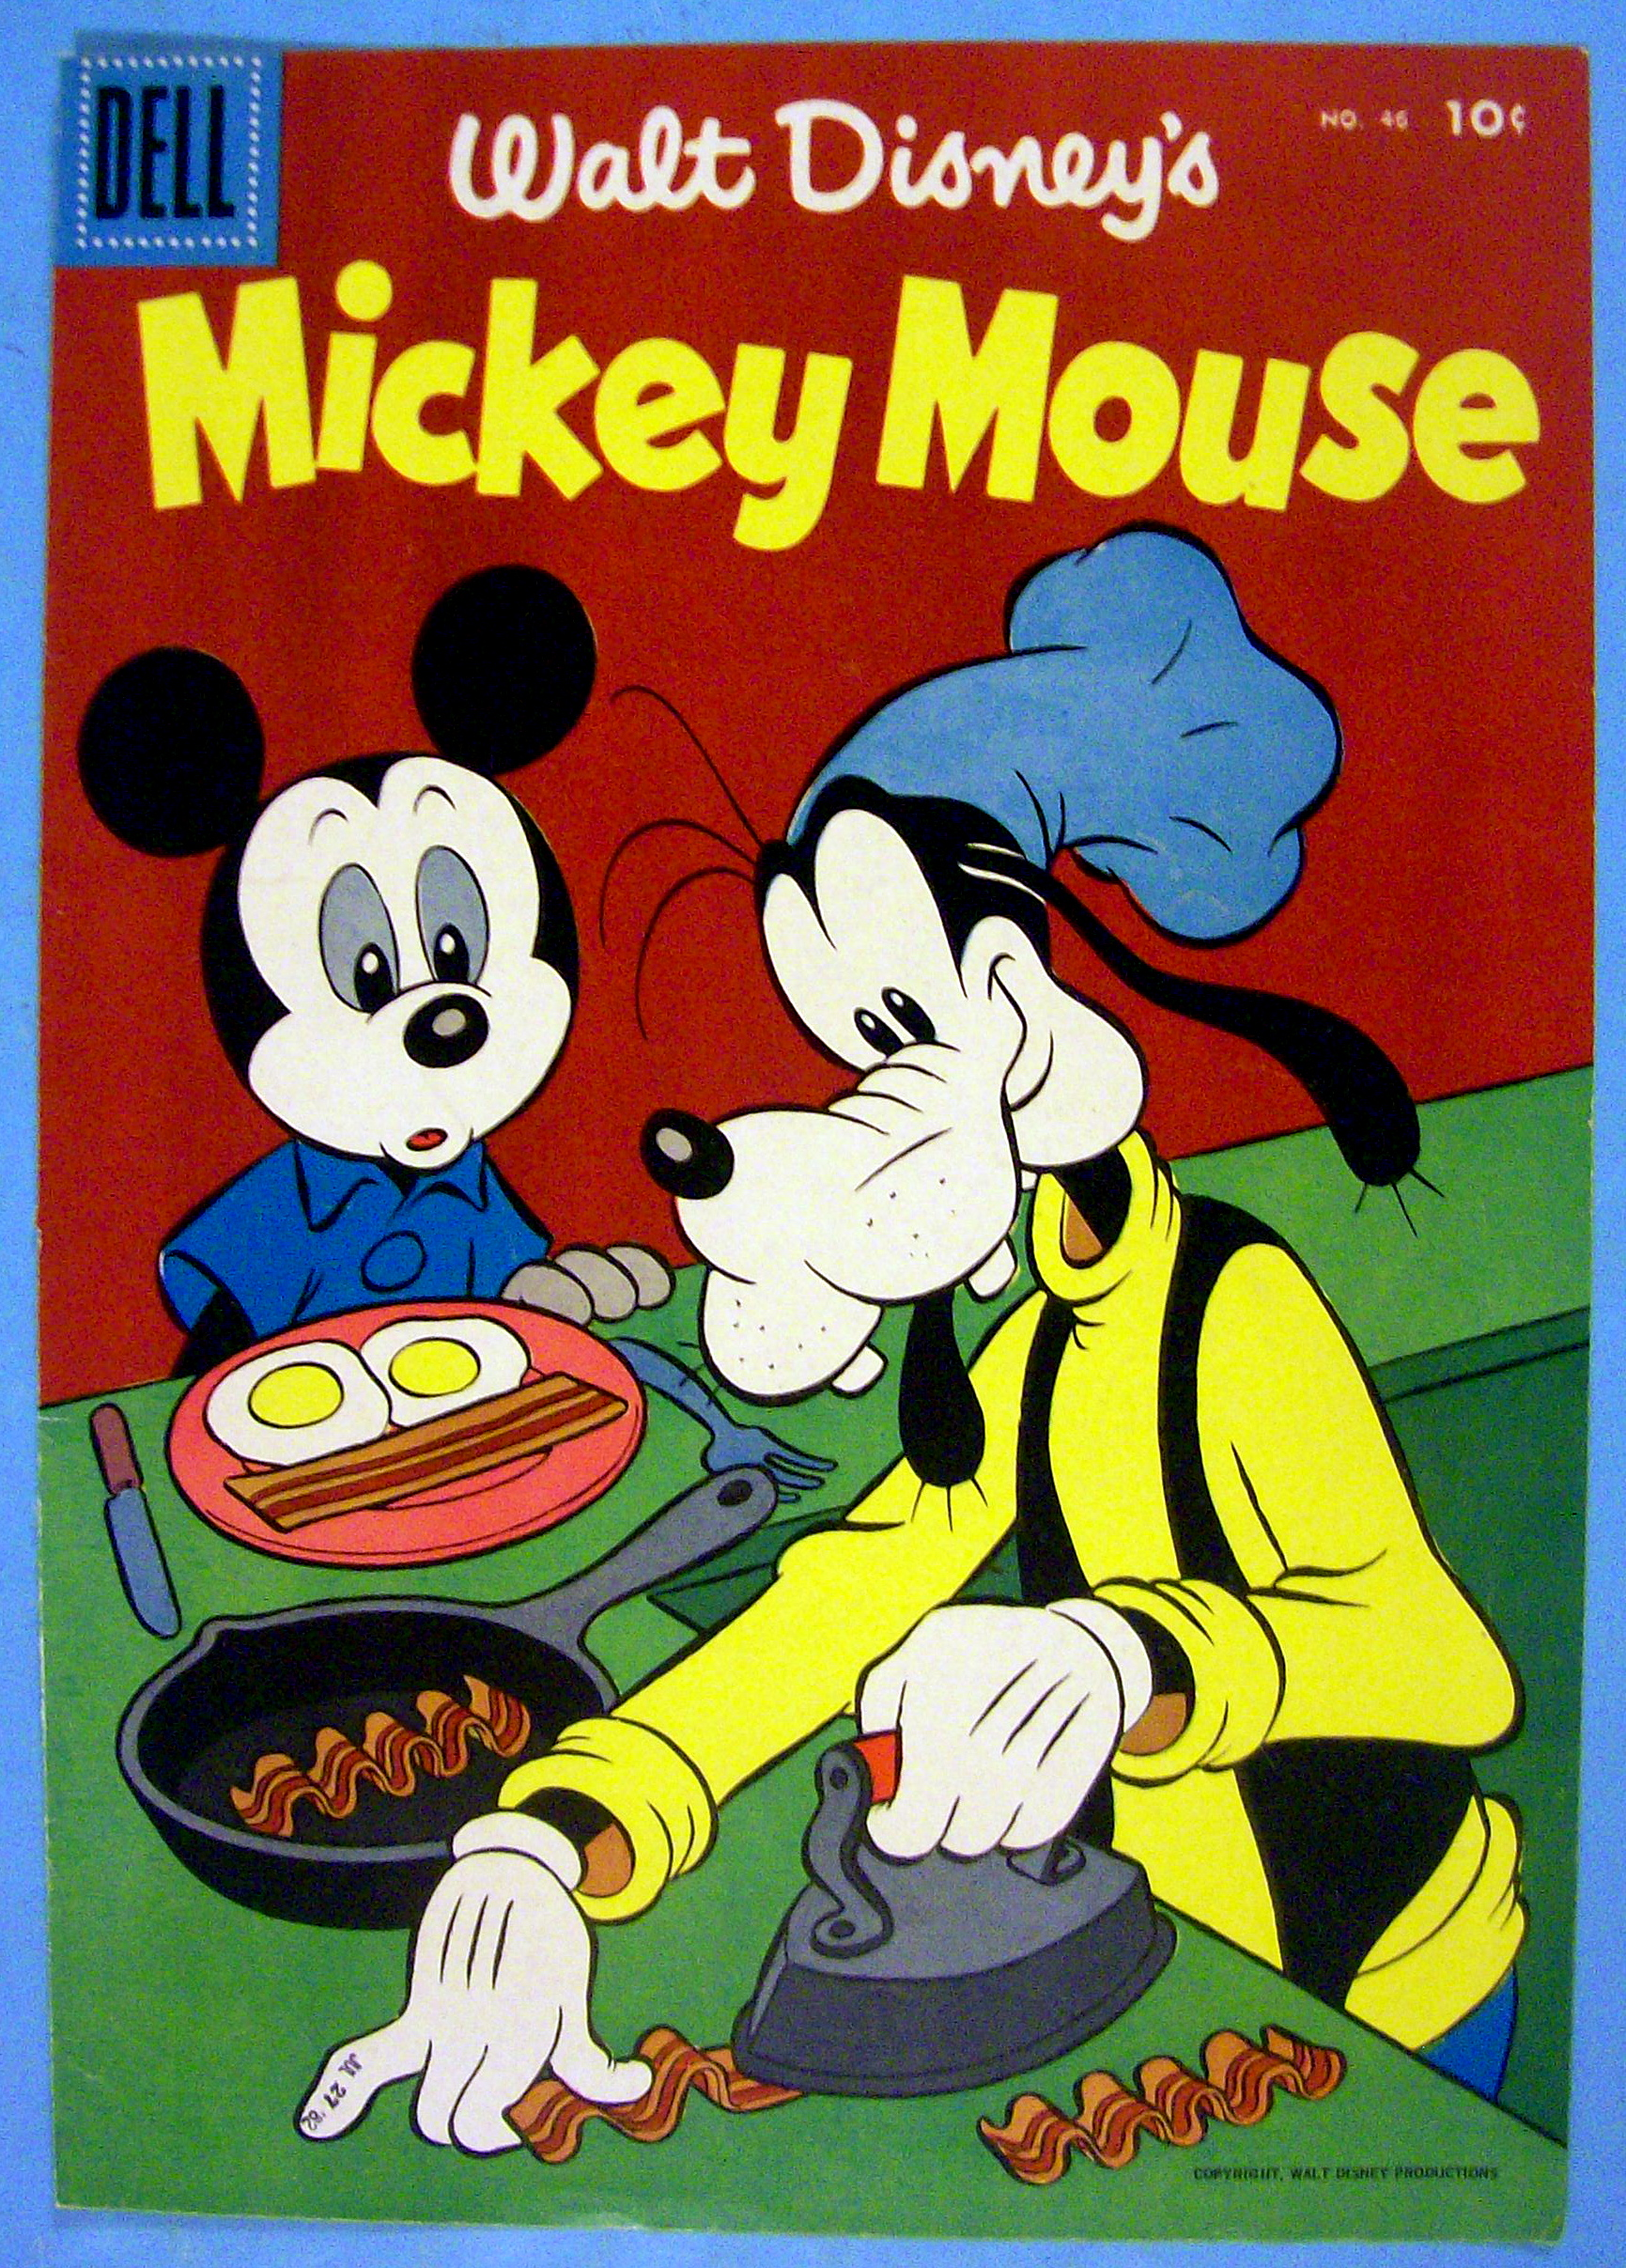 """TIAS Mall > A Date In Time > Cover Art > Comic Covers > Mickey Mouse Comic  Cover #46 1956 Mickey & Goofy""""/></a><br /><span id="""